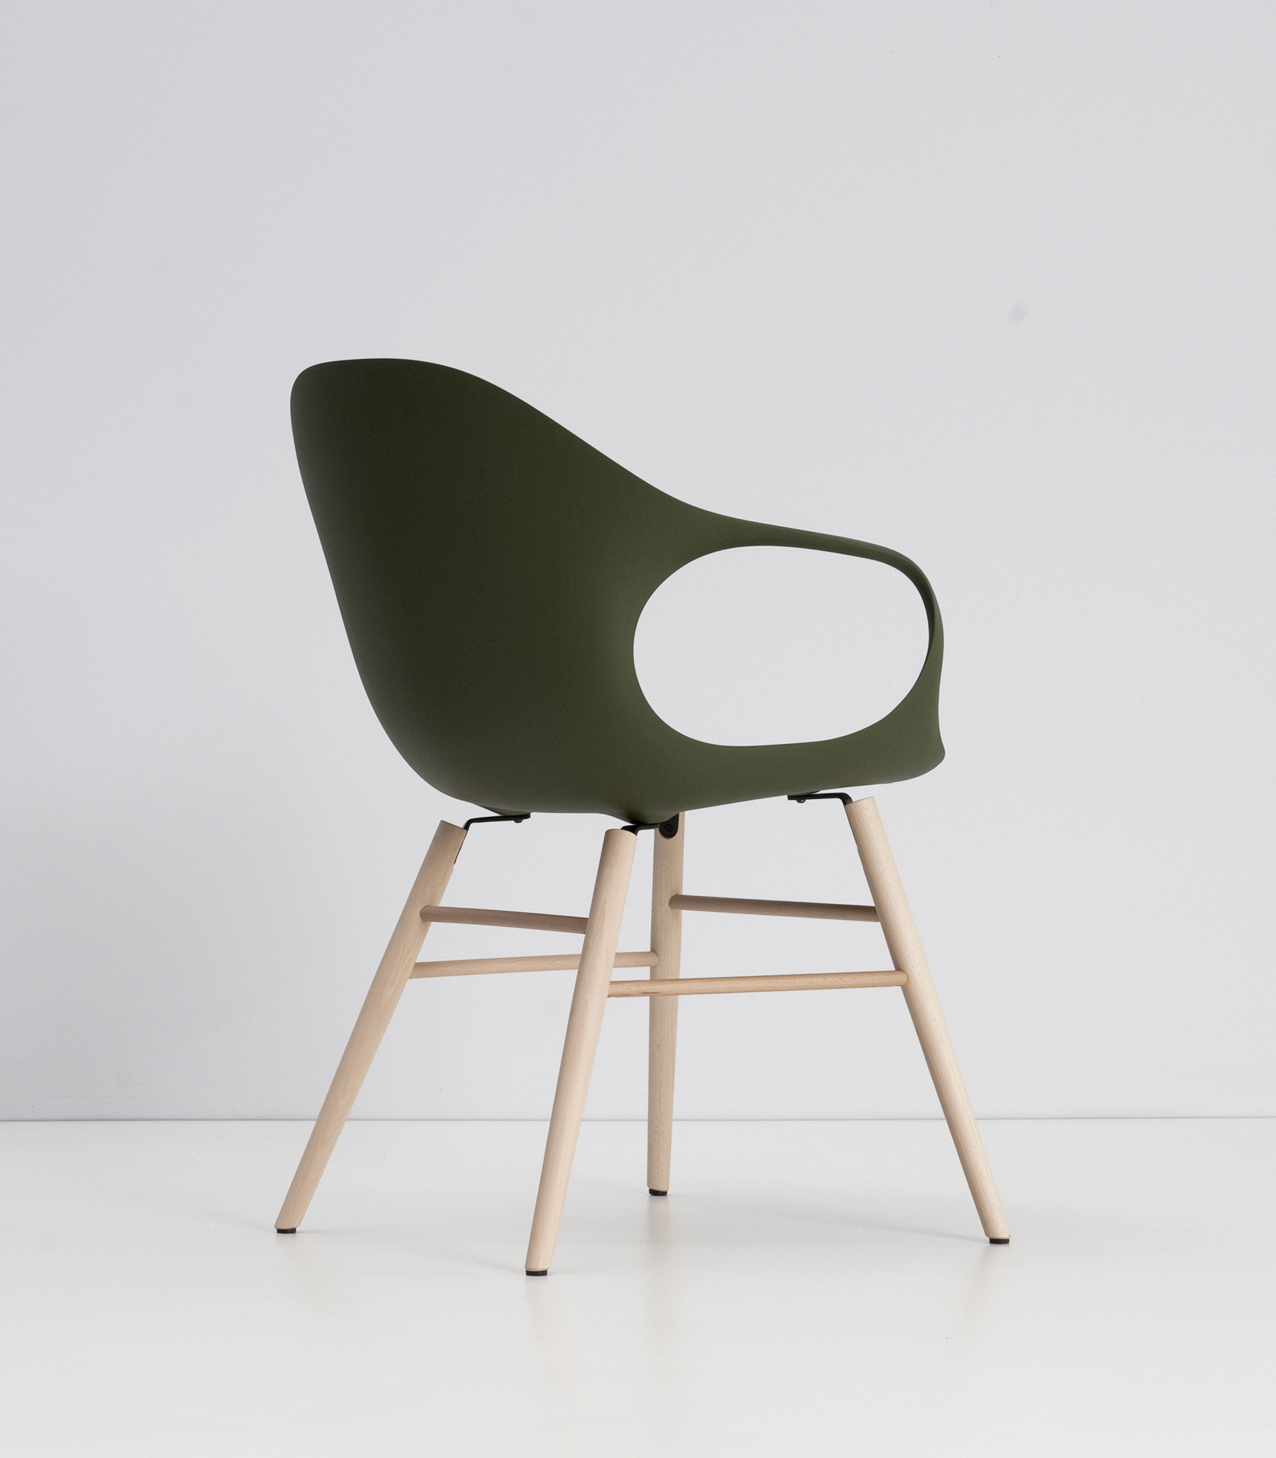 Modern Fold Design Foot On Elephant Chair With Wooden